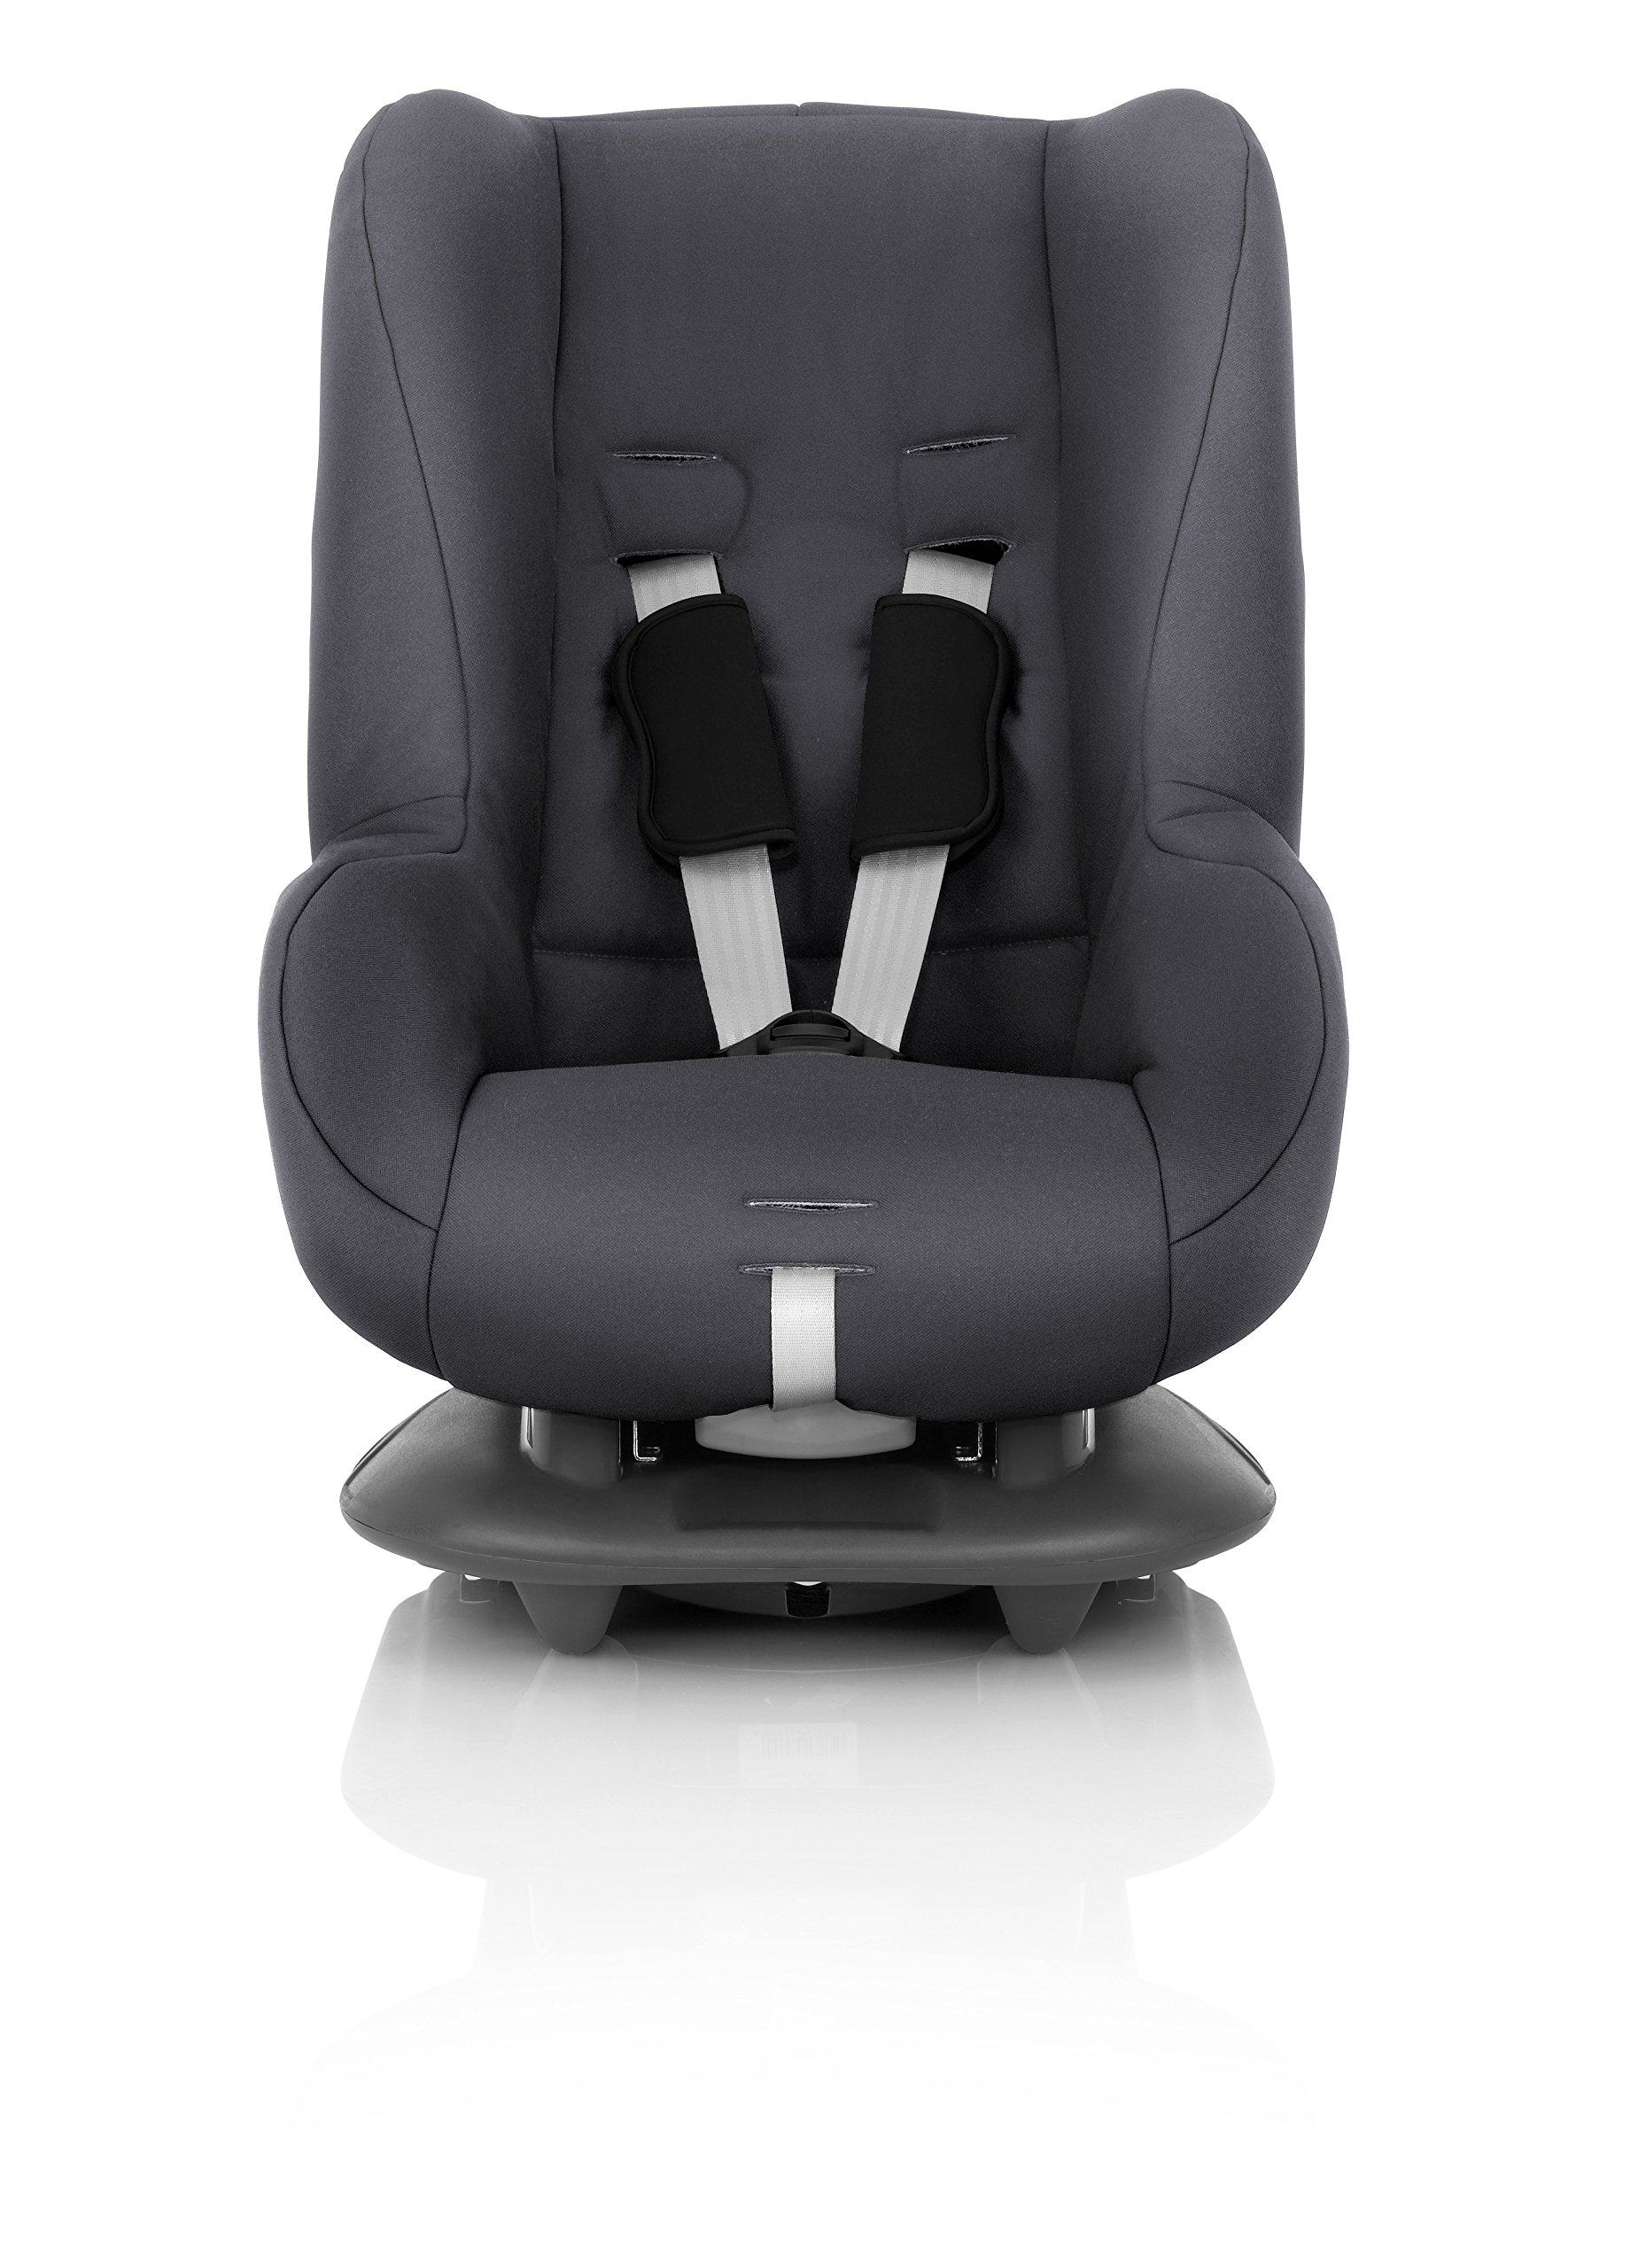 Britax Römer ECLIPSE Group 1 (9-18kg) Car Seat - Storm Grey Britax Römer Deep, protective side wings - our soft, padded side wings act as a protective cocoon that helps to absorb the force from a side impact, reducing the risk of injuries to your child. Easy adjustable headrest and harness - our padded headrest and harness can easily be adjusted with one hand to suit your child's height. 5-point harness - we believe a 5-point harness is the safest way to secure your child in a car seat because it keeps your child safe and tight in the seat's protective shell. 2